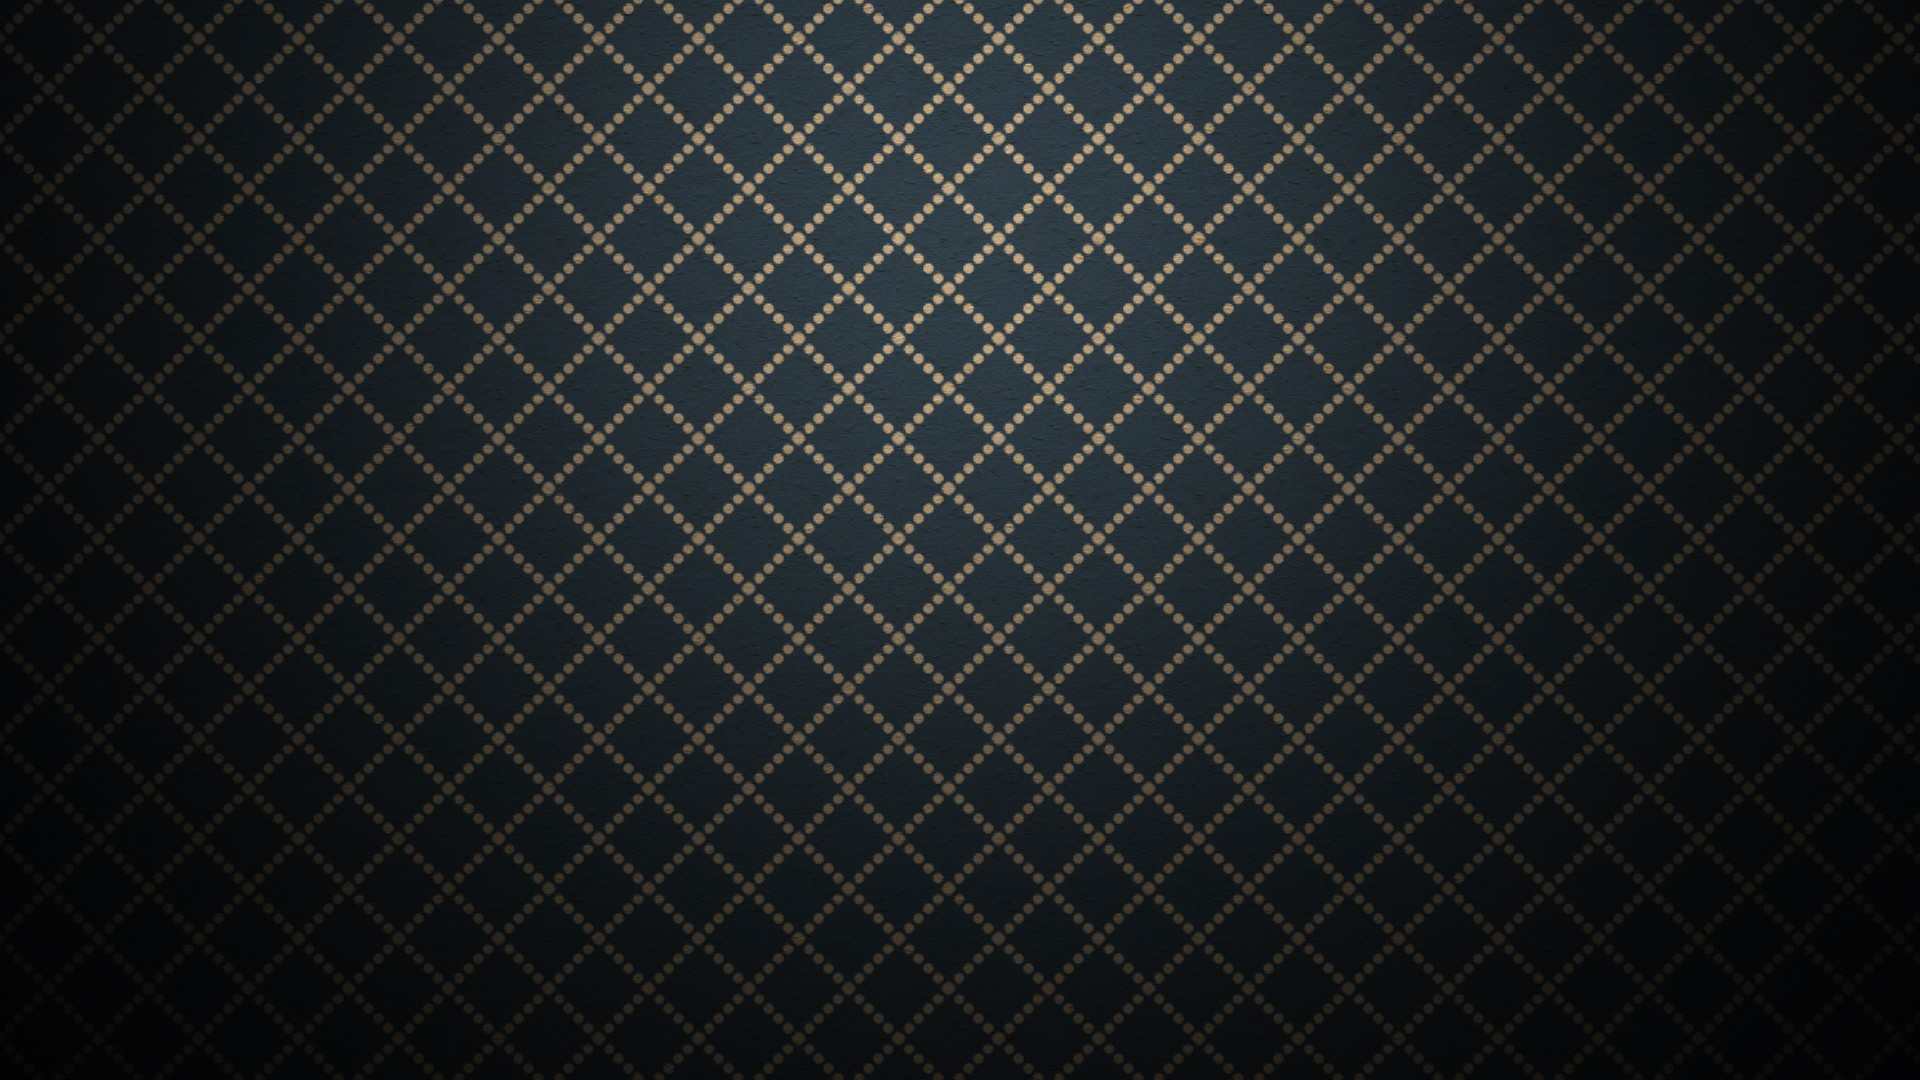 Minimalistic pattern backgrounds